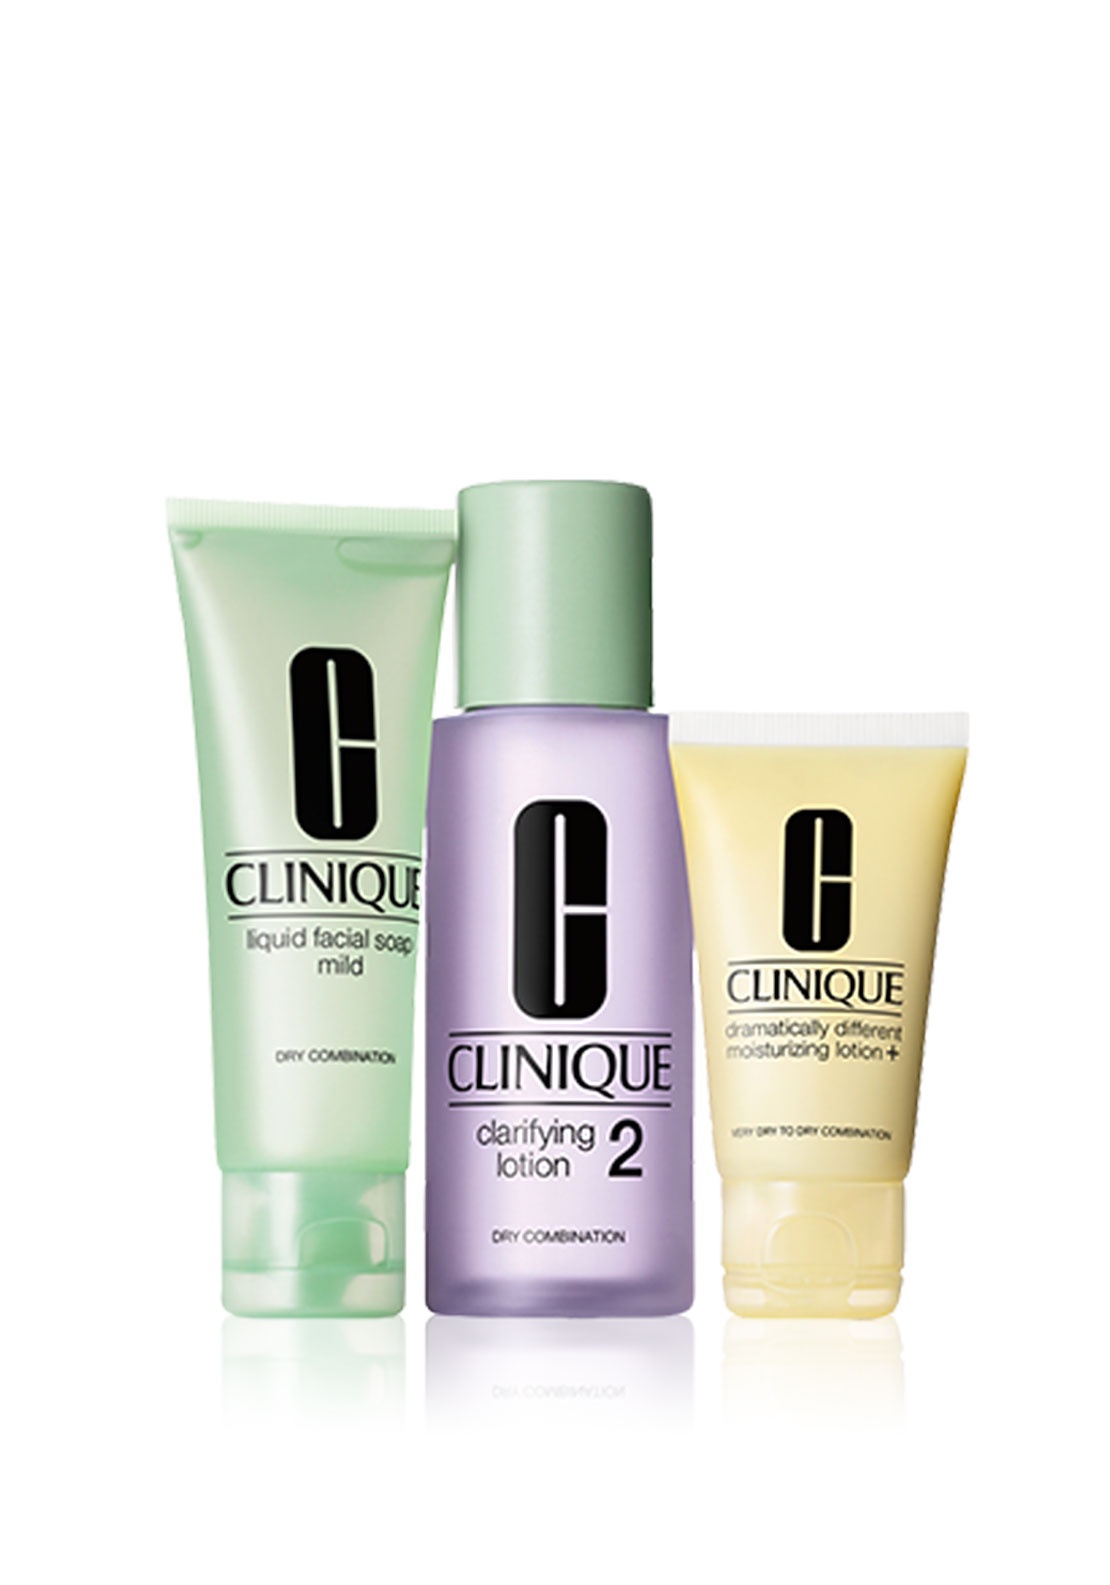 Clinique 3 Step System Gift Set, Skin Type 2